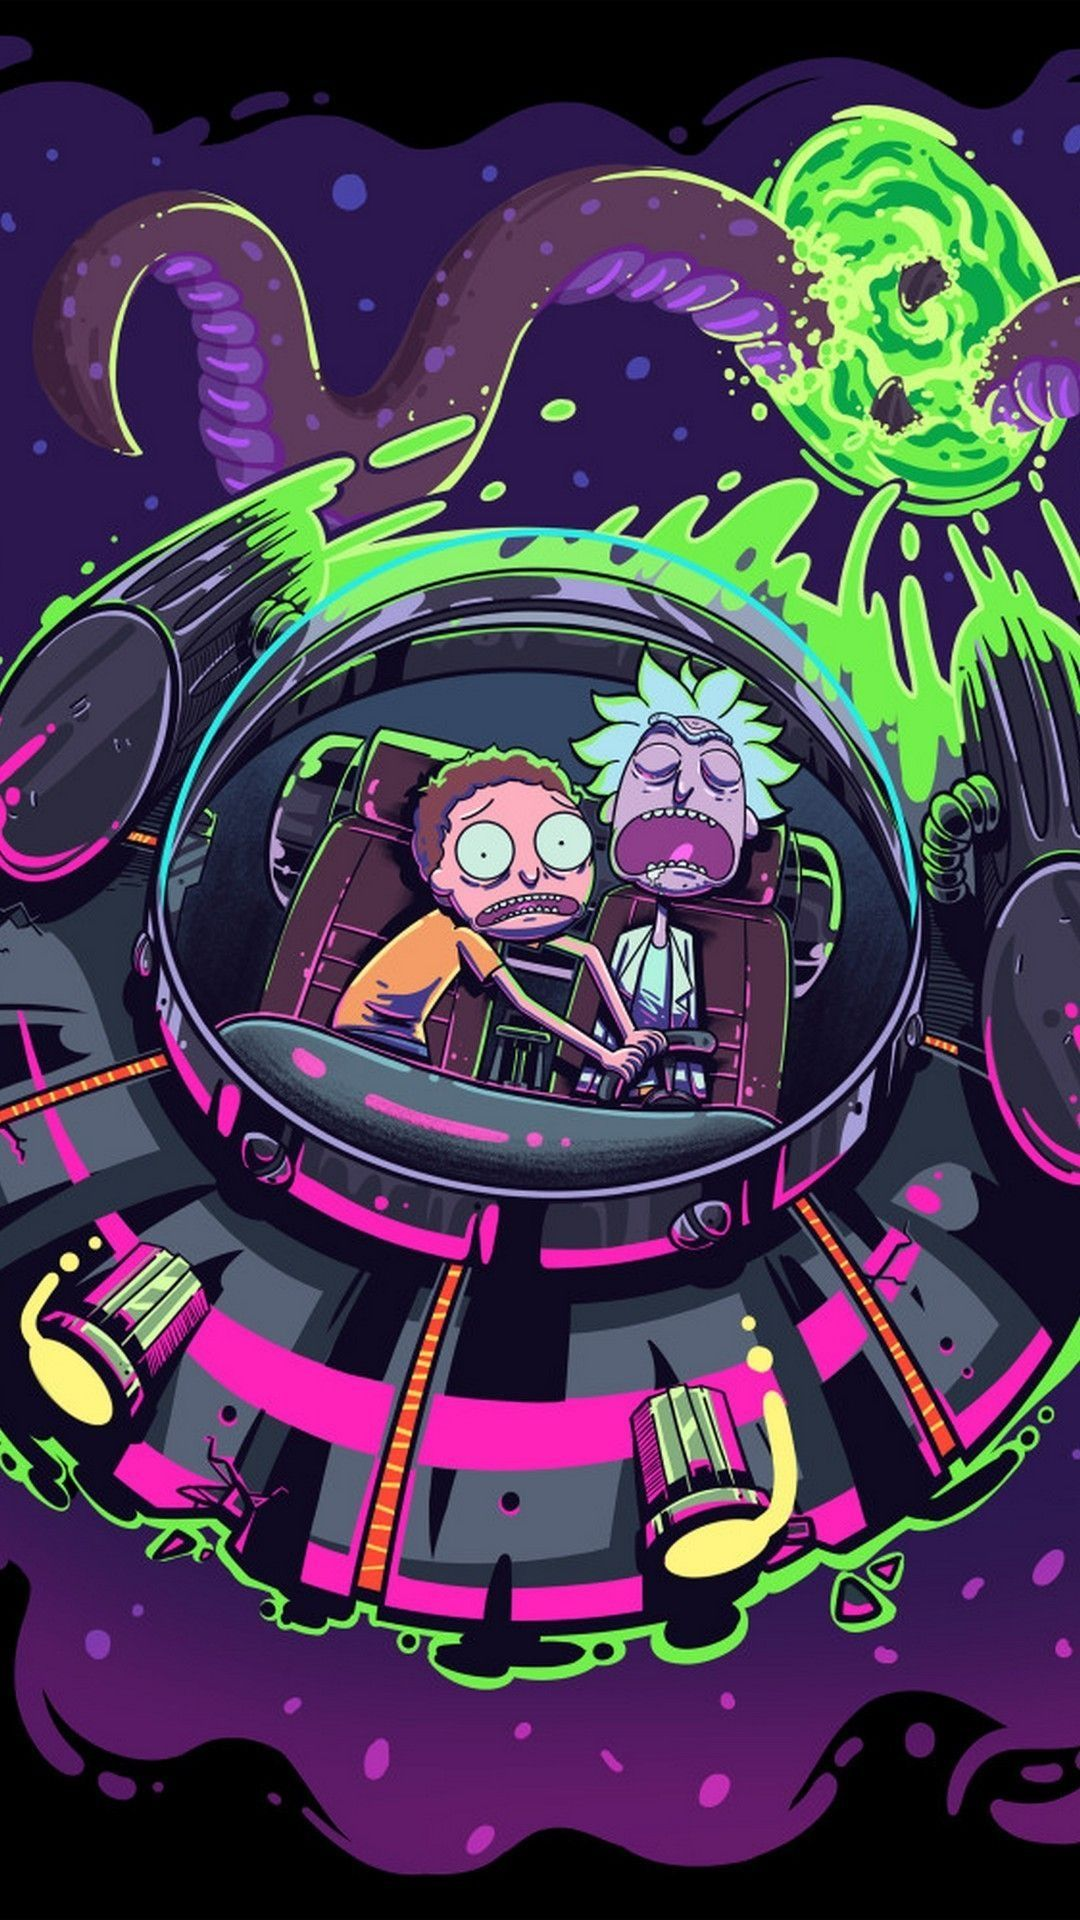 Rick And Morty Iphone Wallpapers Top Free Rick And Morty In The Incredible Rick Y Morty Wallpapers 4k In 2020 Trippy Wallpaper Cartoon Wallpaper Anime Wallpaper